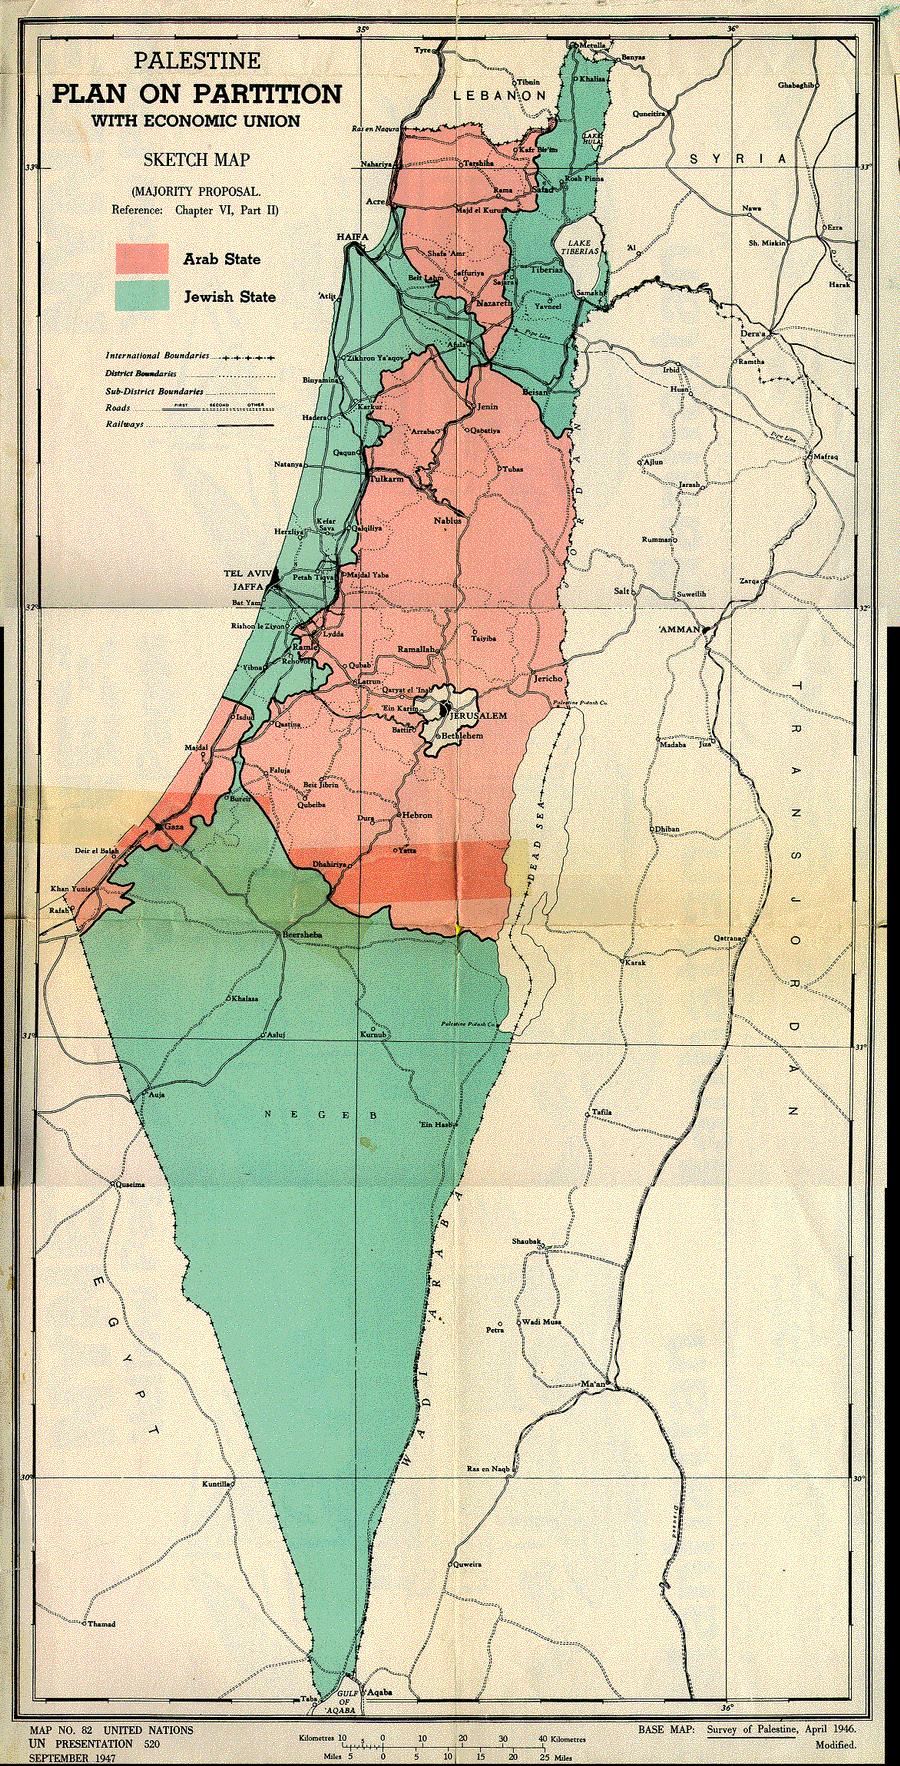 a history of the arab israeli wars after the partition of palestine in 1947 Palestine plan dalet 1947 partition plan the arab–israeli conflict – the palestine war 1948 a history of the first arab–israeli war.